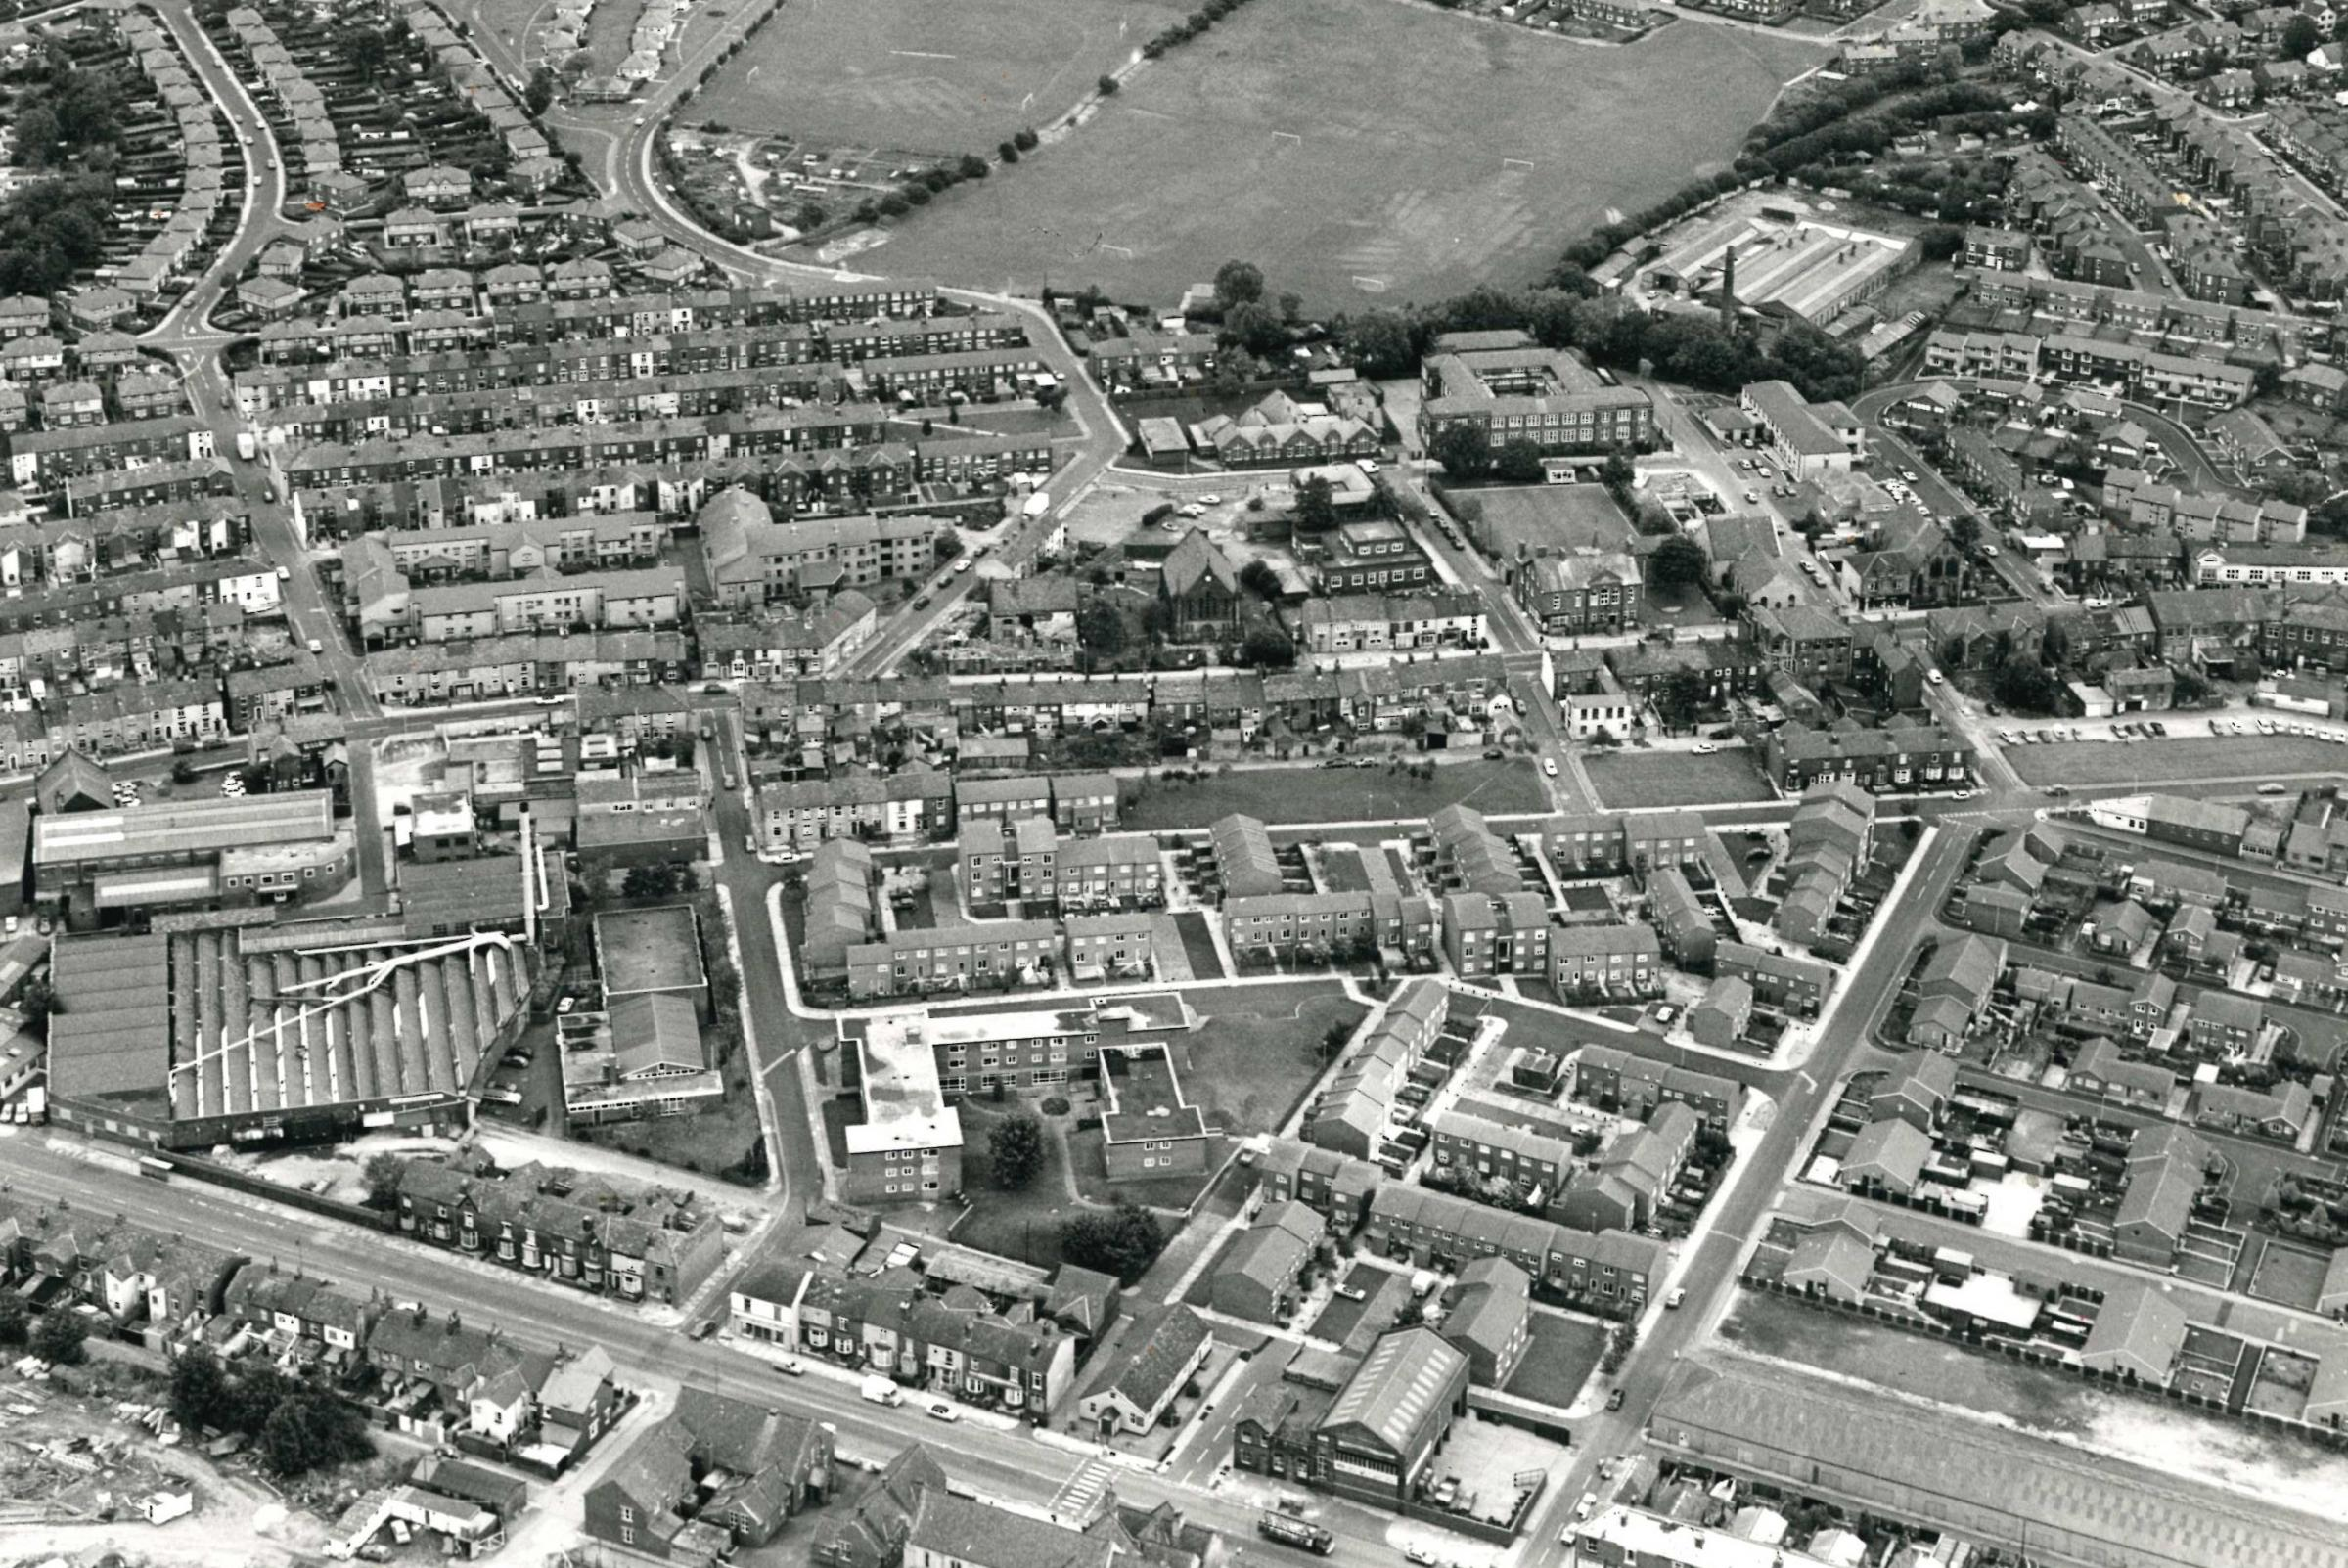 So you think you know Horwich, what can you see from the air?